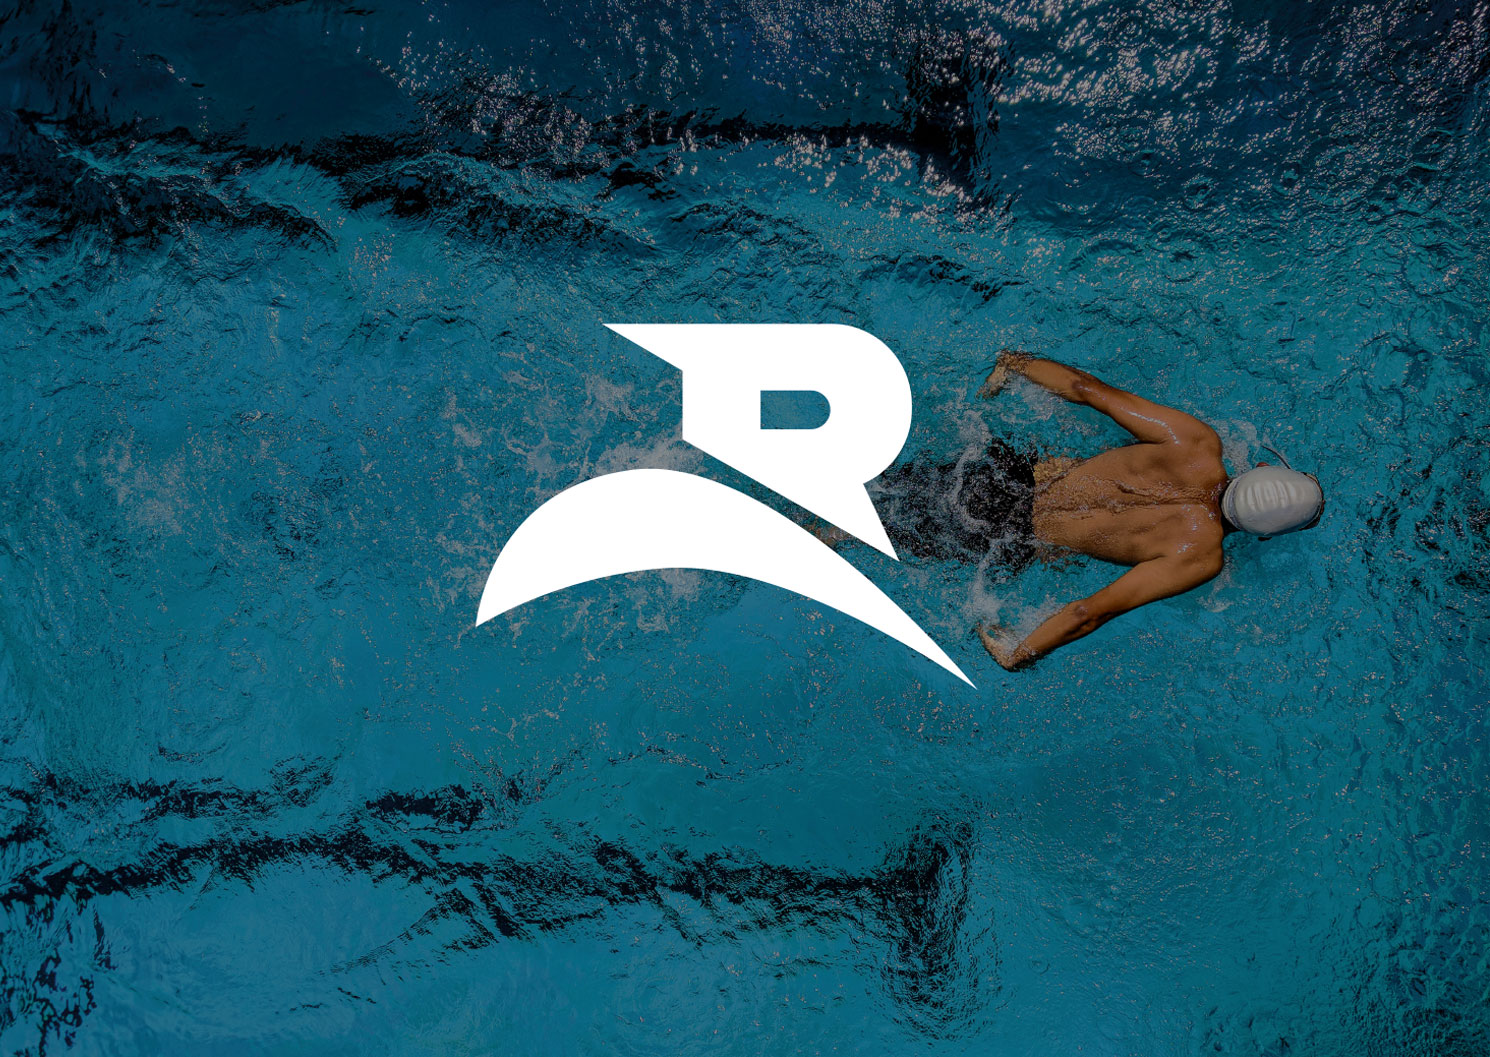 Logo du club Renens Natation - Haymoz design